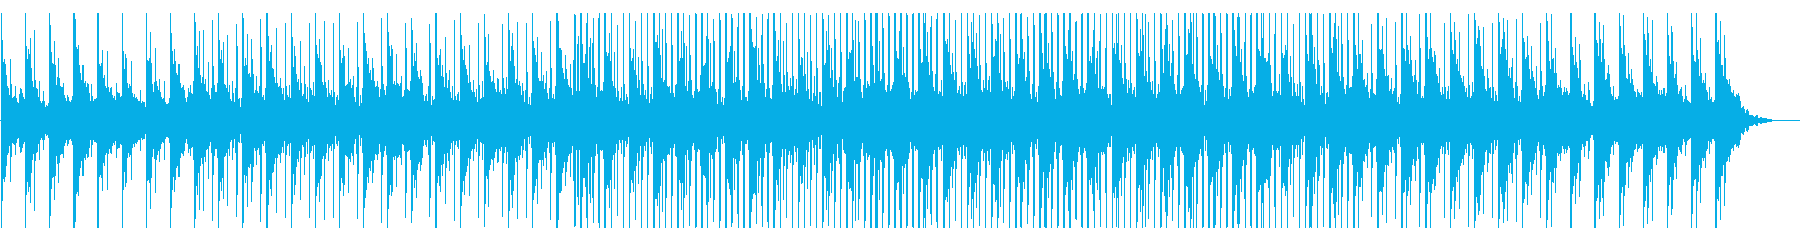 Neutral BGM for news commentary's reproduced waveform